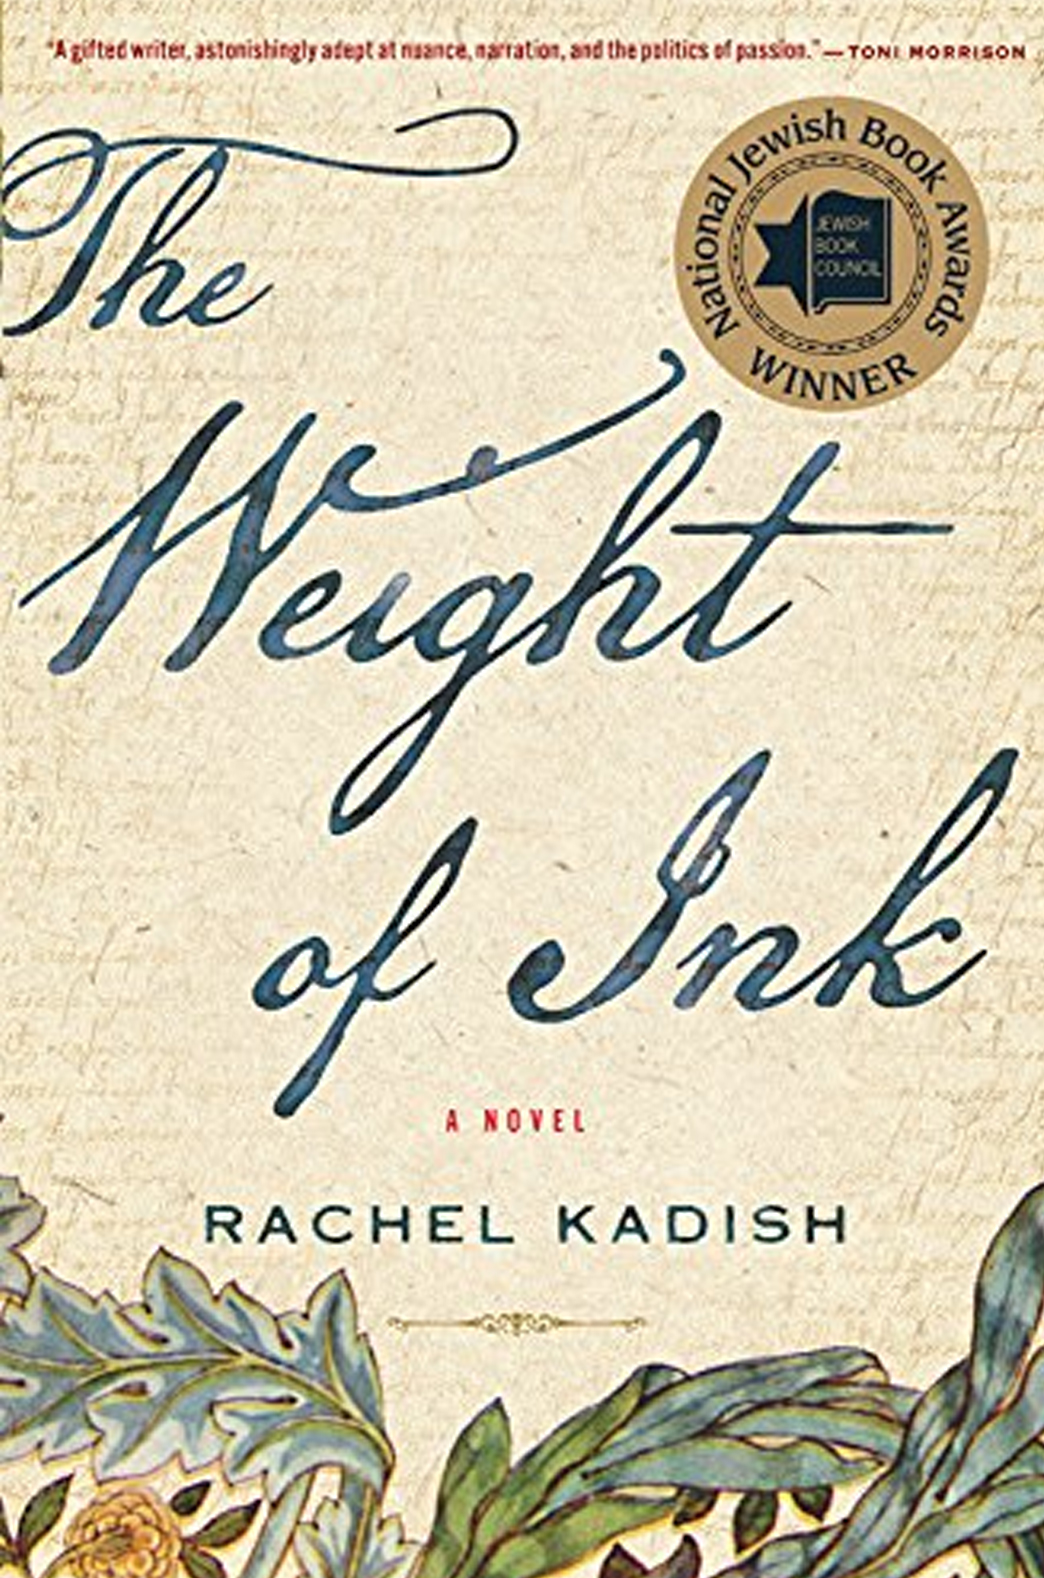 kathleen stone writer booklab literary salon the weight of ink rachel kadish